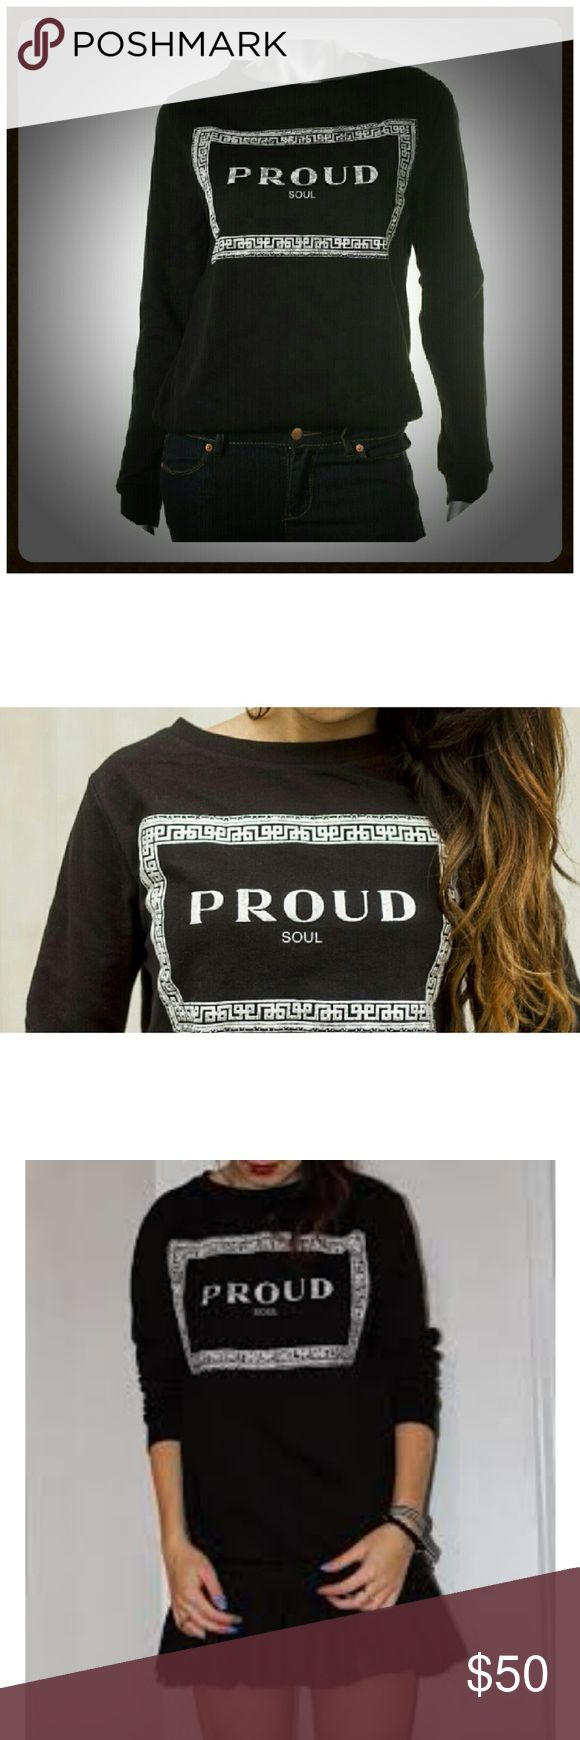 SALE*GIFT*ZARA Proud Soul Sweatshirt NWT S MAKES AN A*M*A*Z*I*N*G GIFT   Soft black, comfy sweatshirt with PROUD SOUL print graphic. Lightweight sweatshirt 95% cotton, 5% elastane NWT S  BUY 3 or More and Get 20% OFF! Zara Tops Sweatshirts & Hoodies